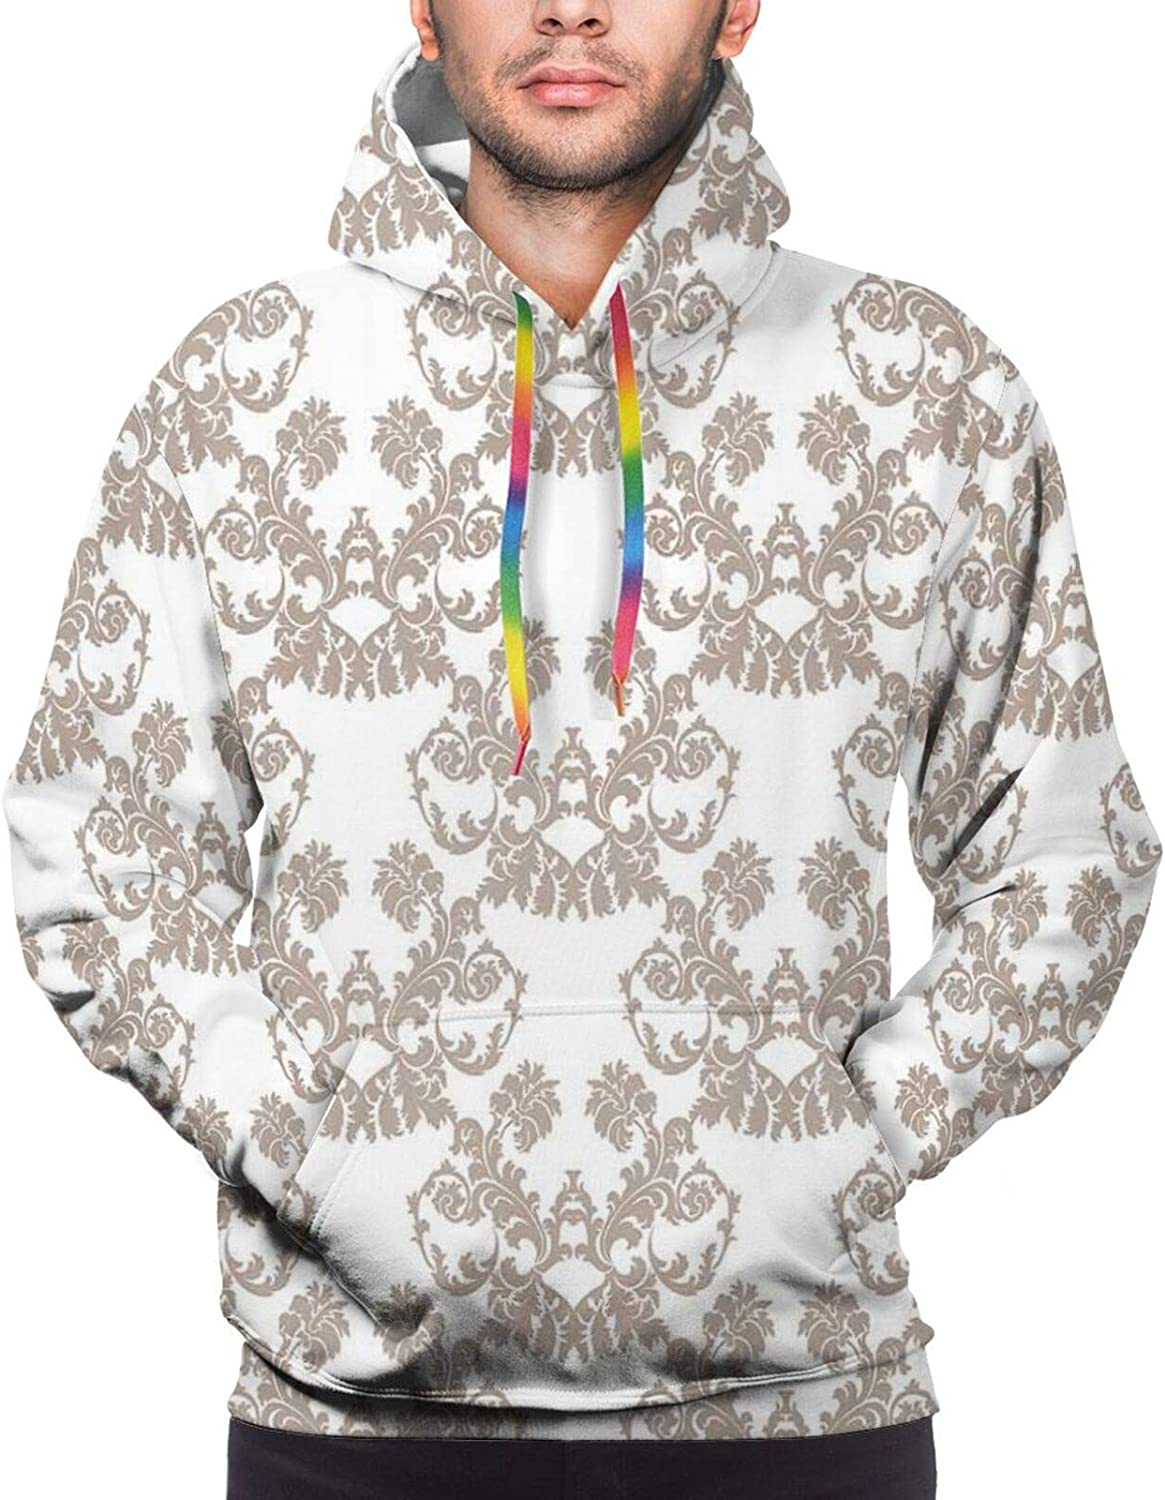 Men's Hoodies Sweatshirts,Rococo Style Flourishing Flowers Imperial Pattern Old Fashioned Classy Tile Delicate